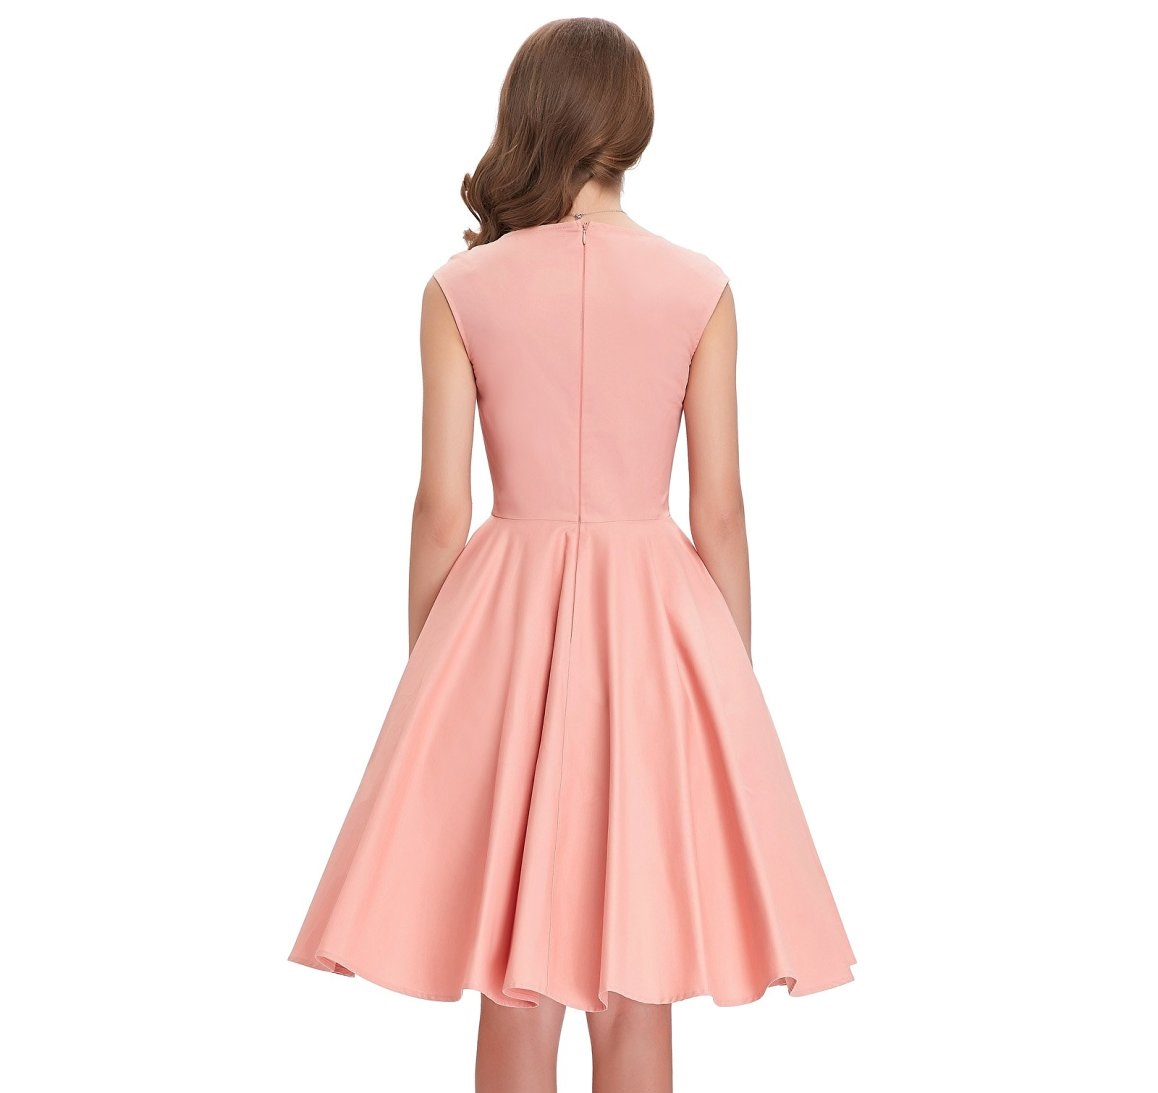 Tiffany Peach Sweetheart Swing Dress Vintage Clothing